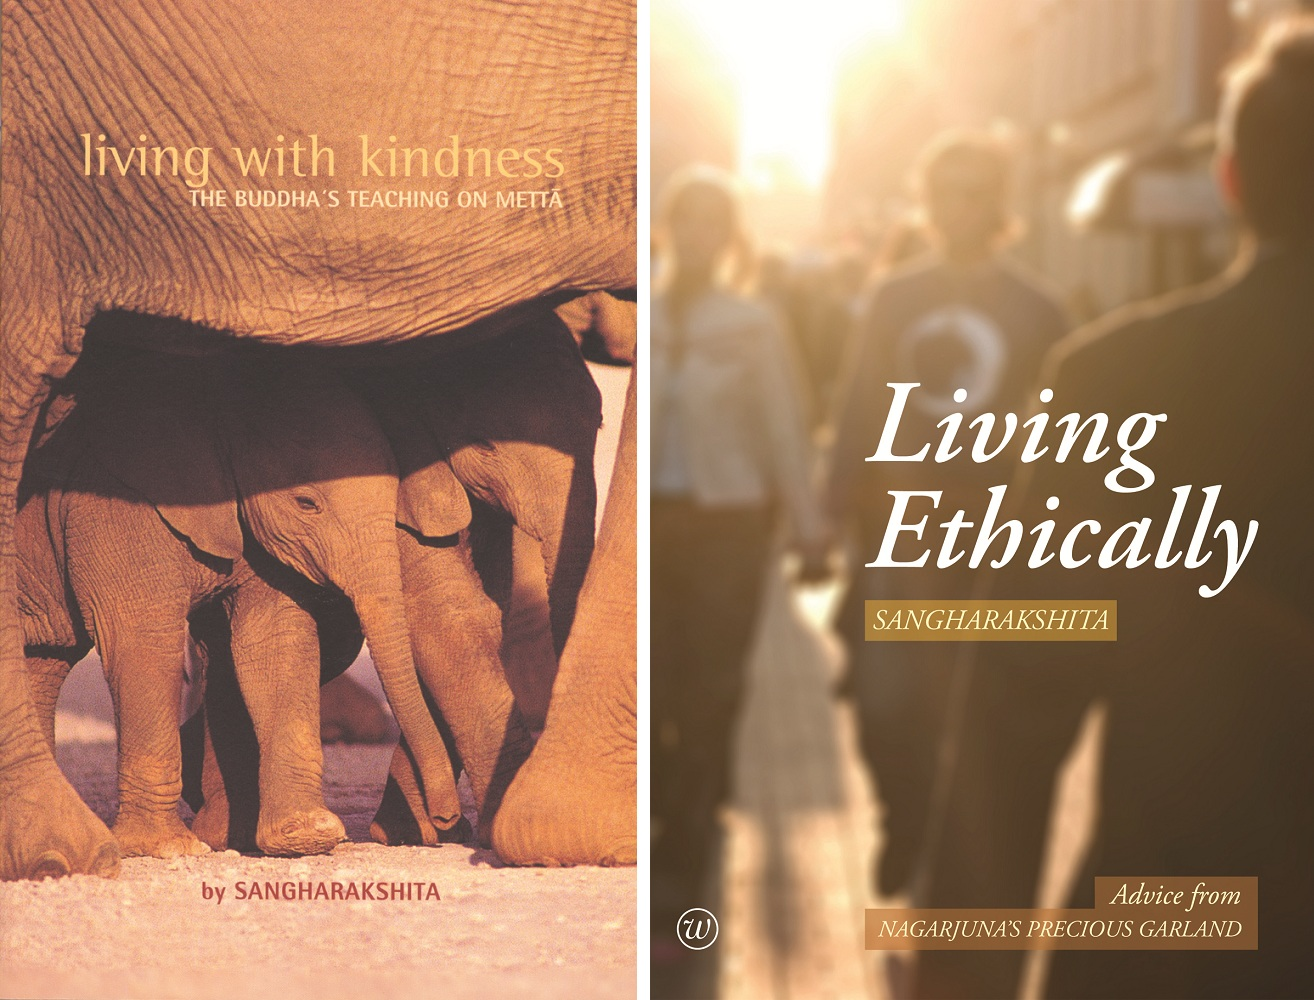 Support our campaign to reprint Sangharakshita's Living with Kindness and Living Ethically and receive three DRM-free eBooks, including A Survey of Buddhism